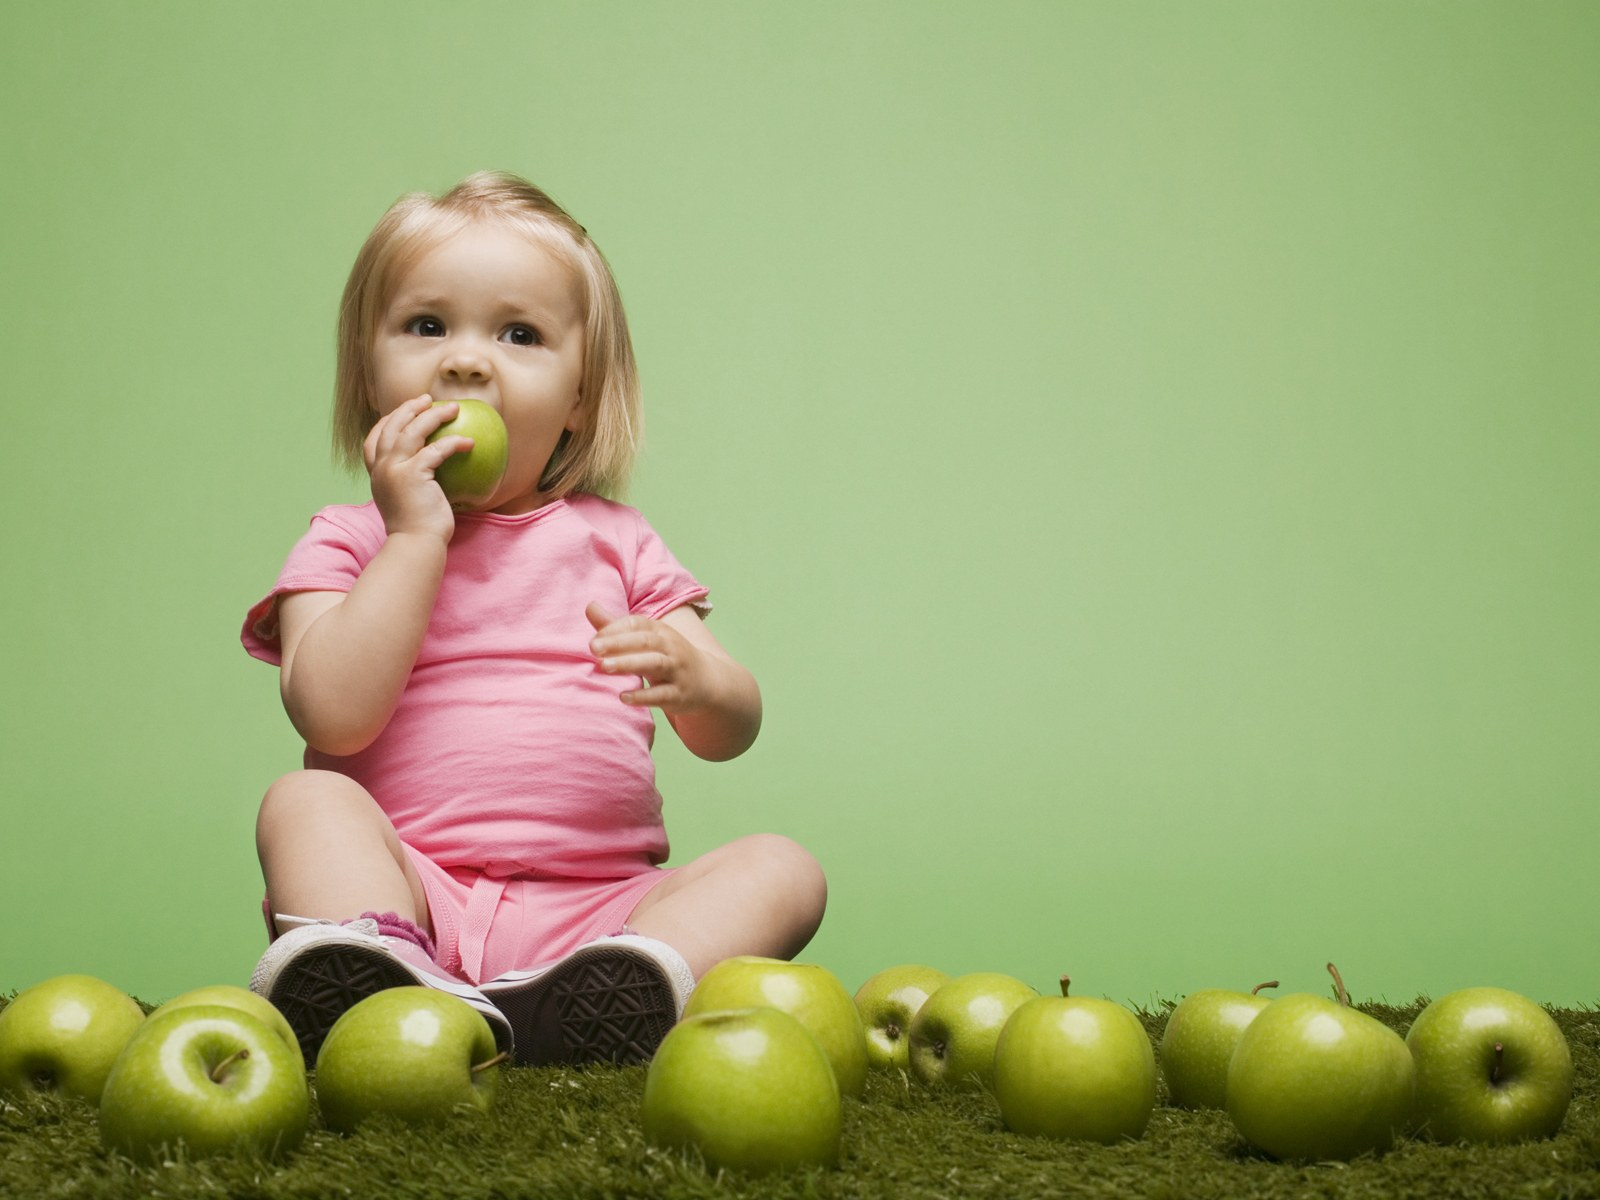 Organic Babies - Lovely kids and baby photography (VOL.2) 1600x1200 ...